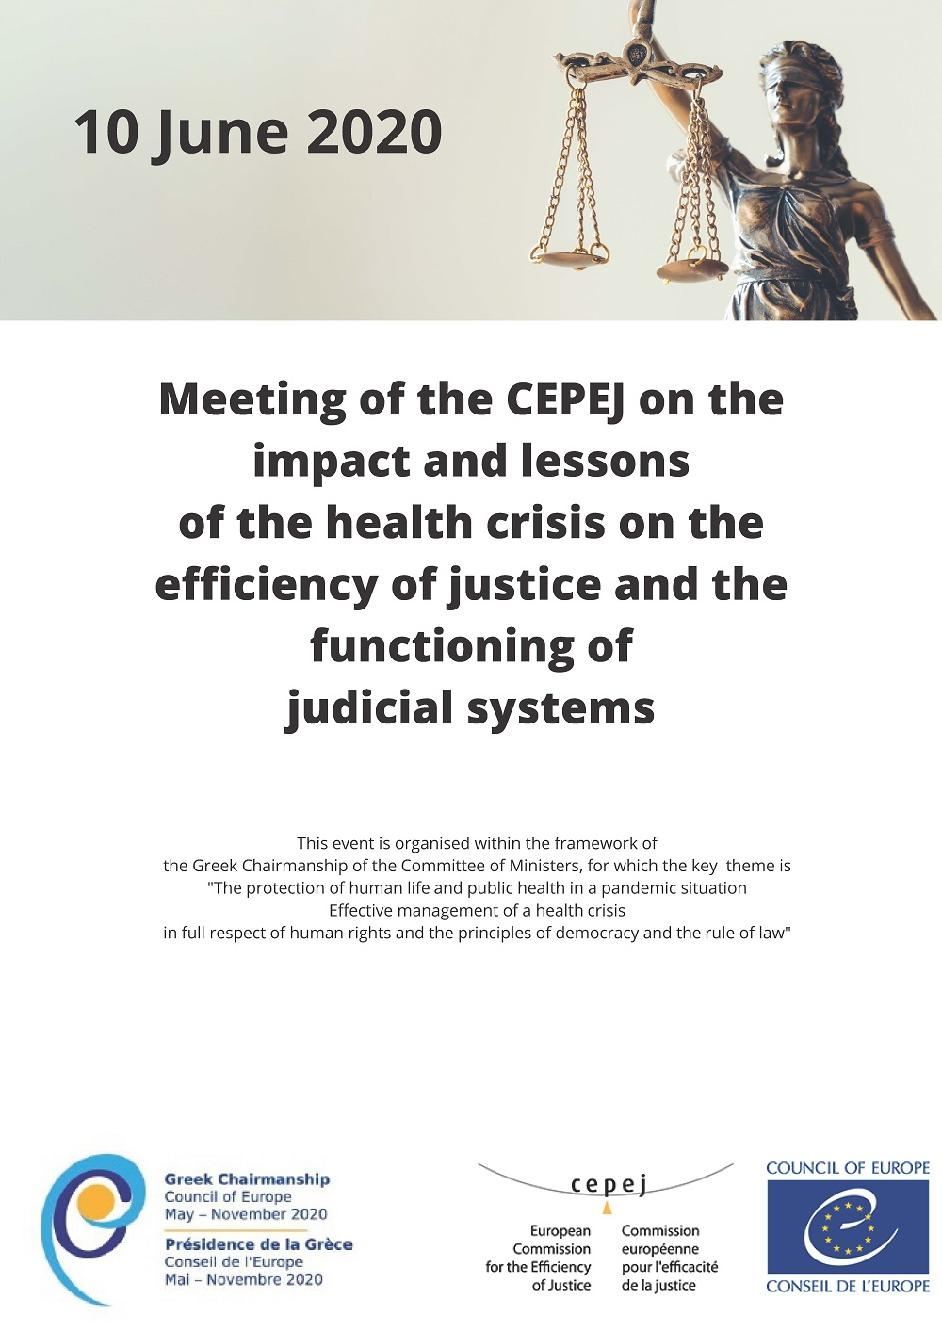 Exceptional meeting of the CEPEJ on the impact and lessons of the health crisis on the efficiency of justice and the functioning of judicial systems